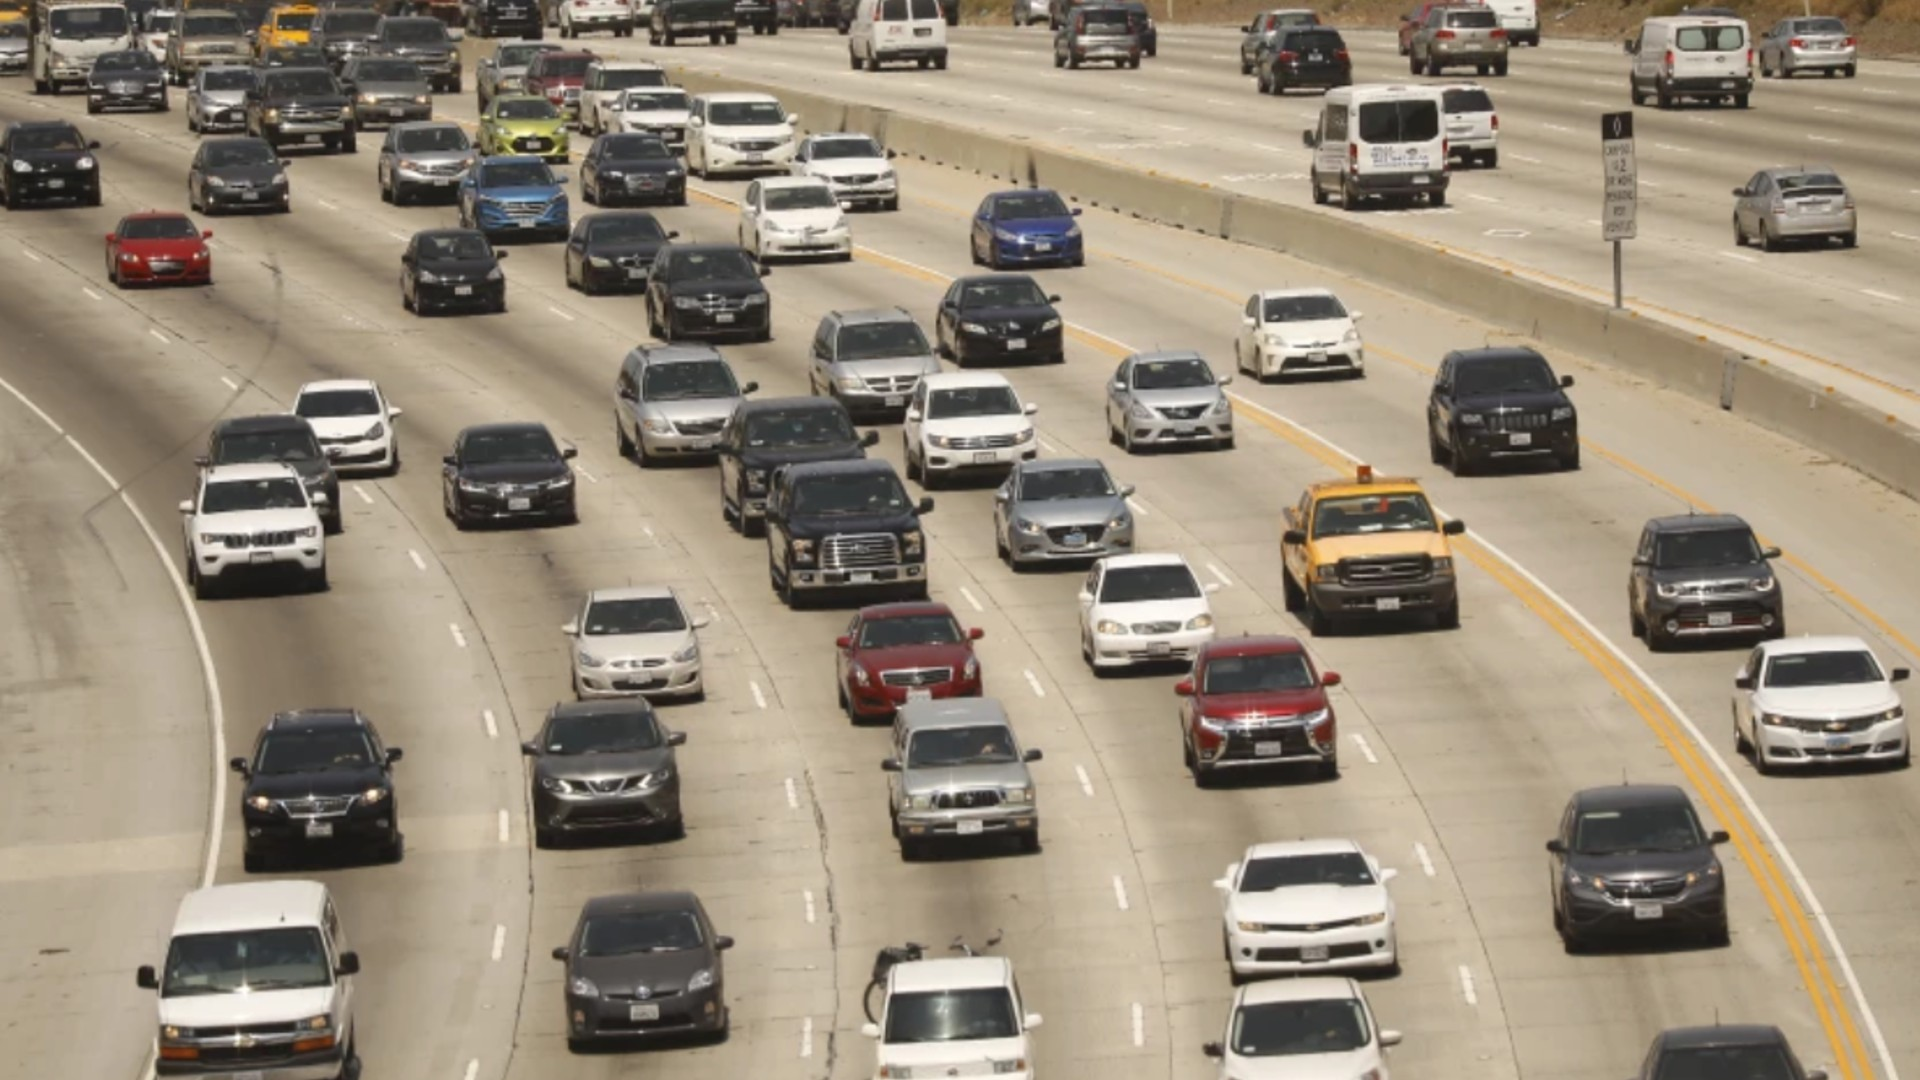 The 405 Freeway traffic in the Sepulveda Pass in Los Angeles in August 2018. (Al Seib/Los Angeles Times)